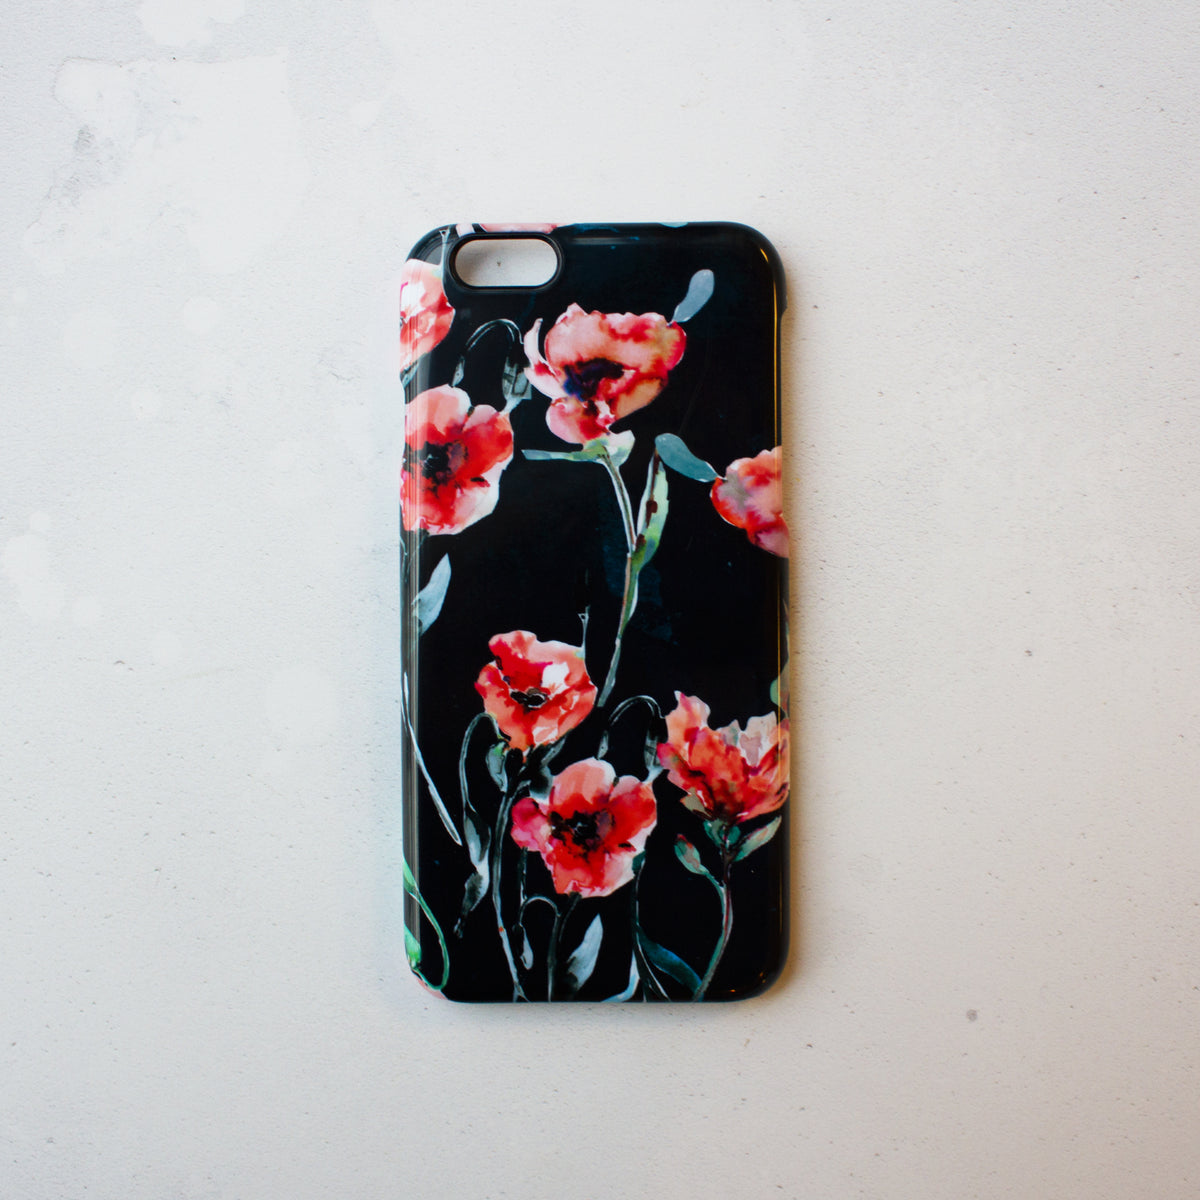 Winter Poppies Smart phone case